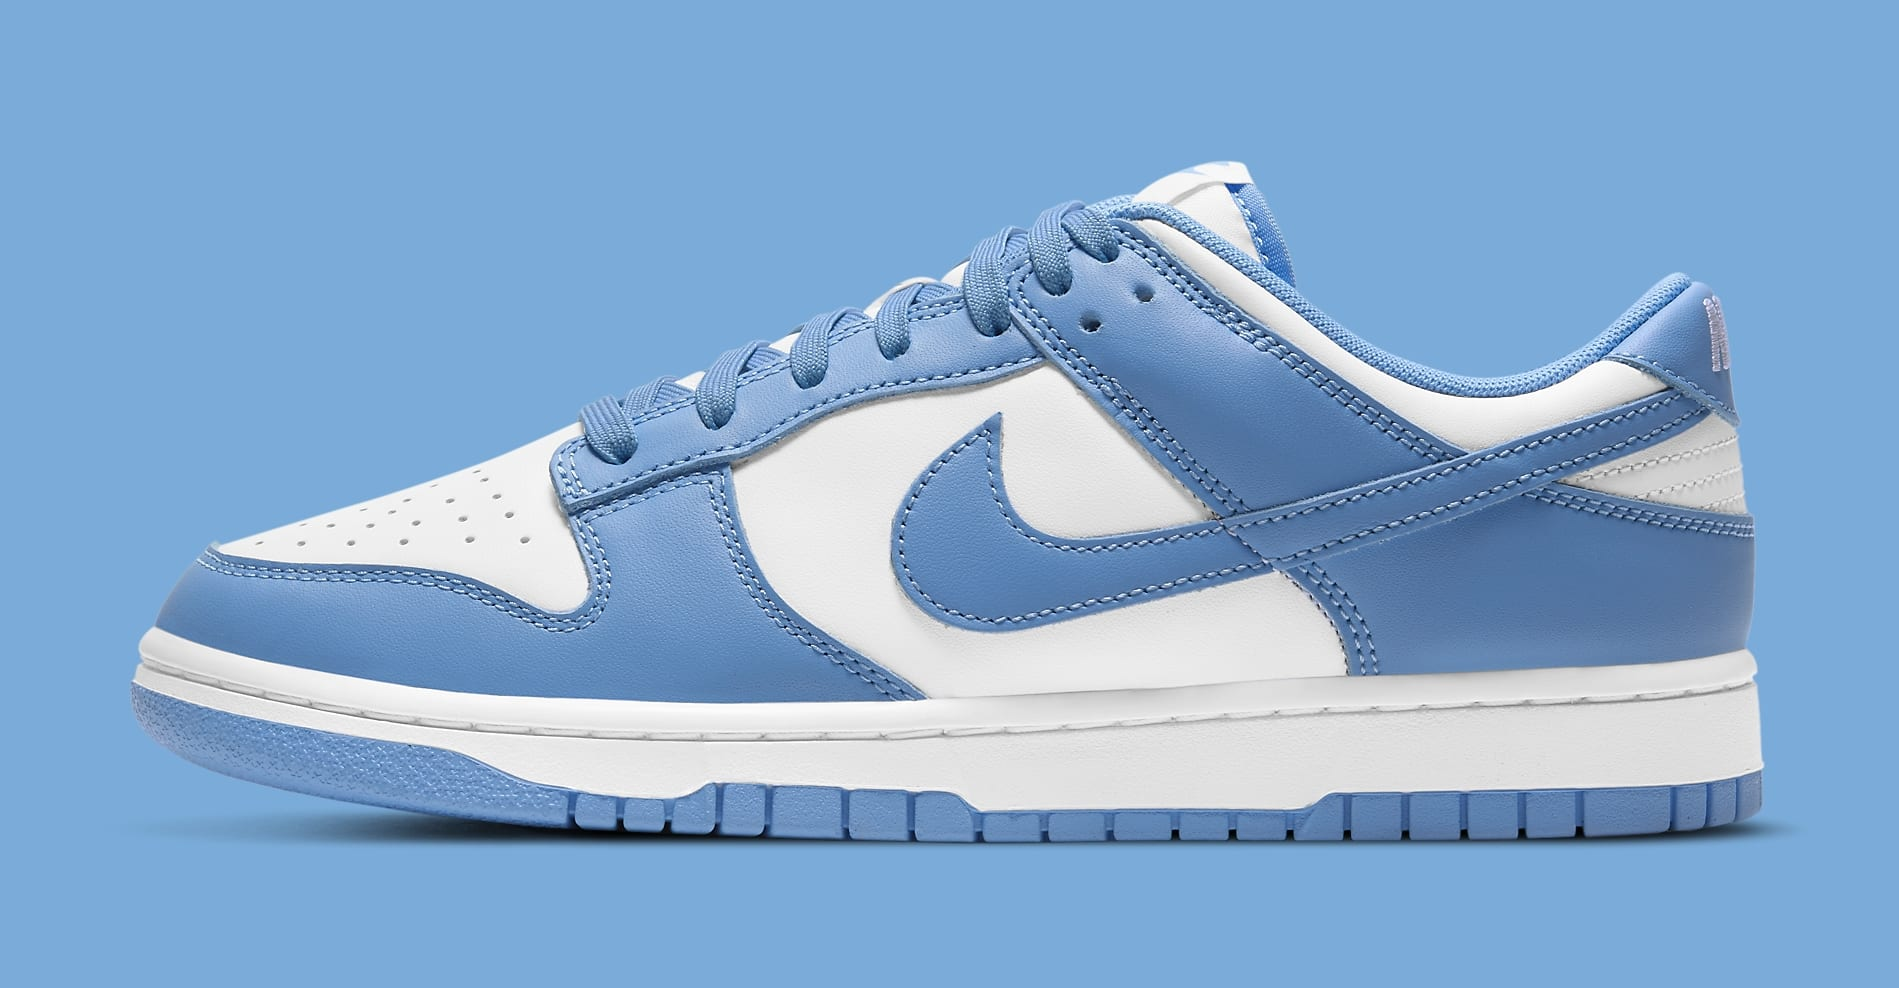 Nike Dunk Low 'University Blue' DD1391 102 Lateral